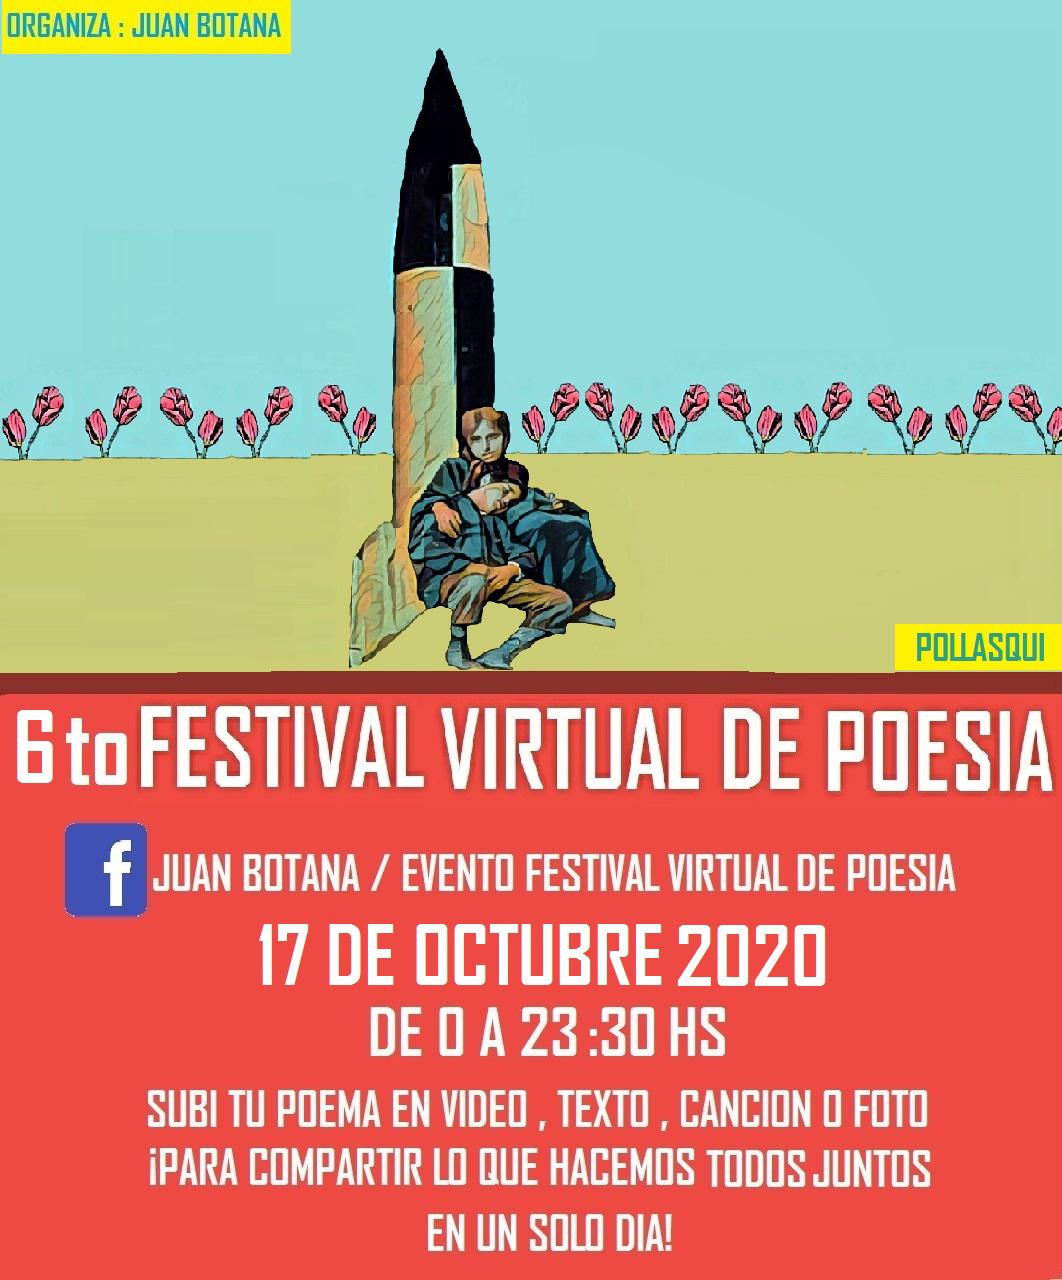 6to Festival de Posdata-digital-press